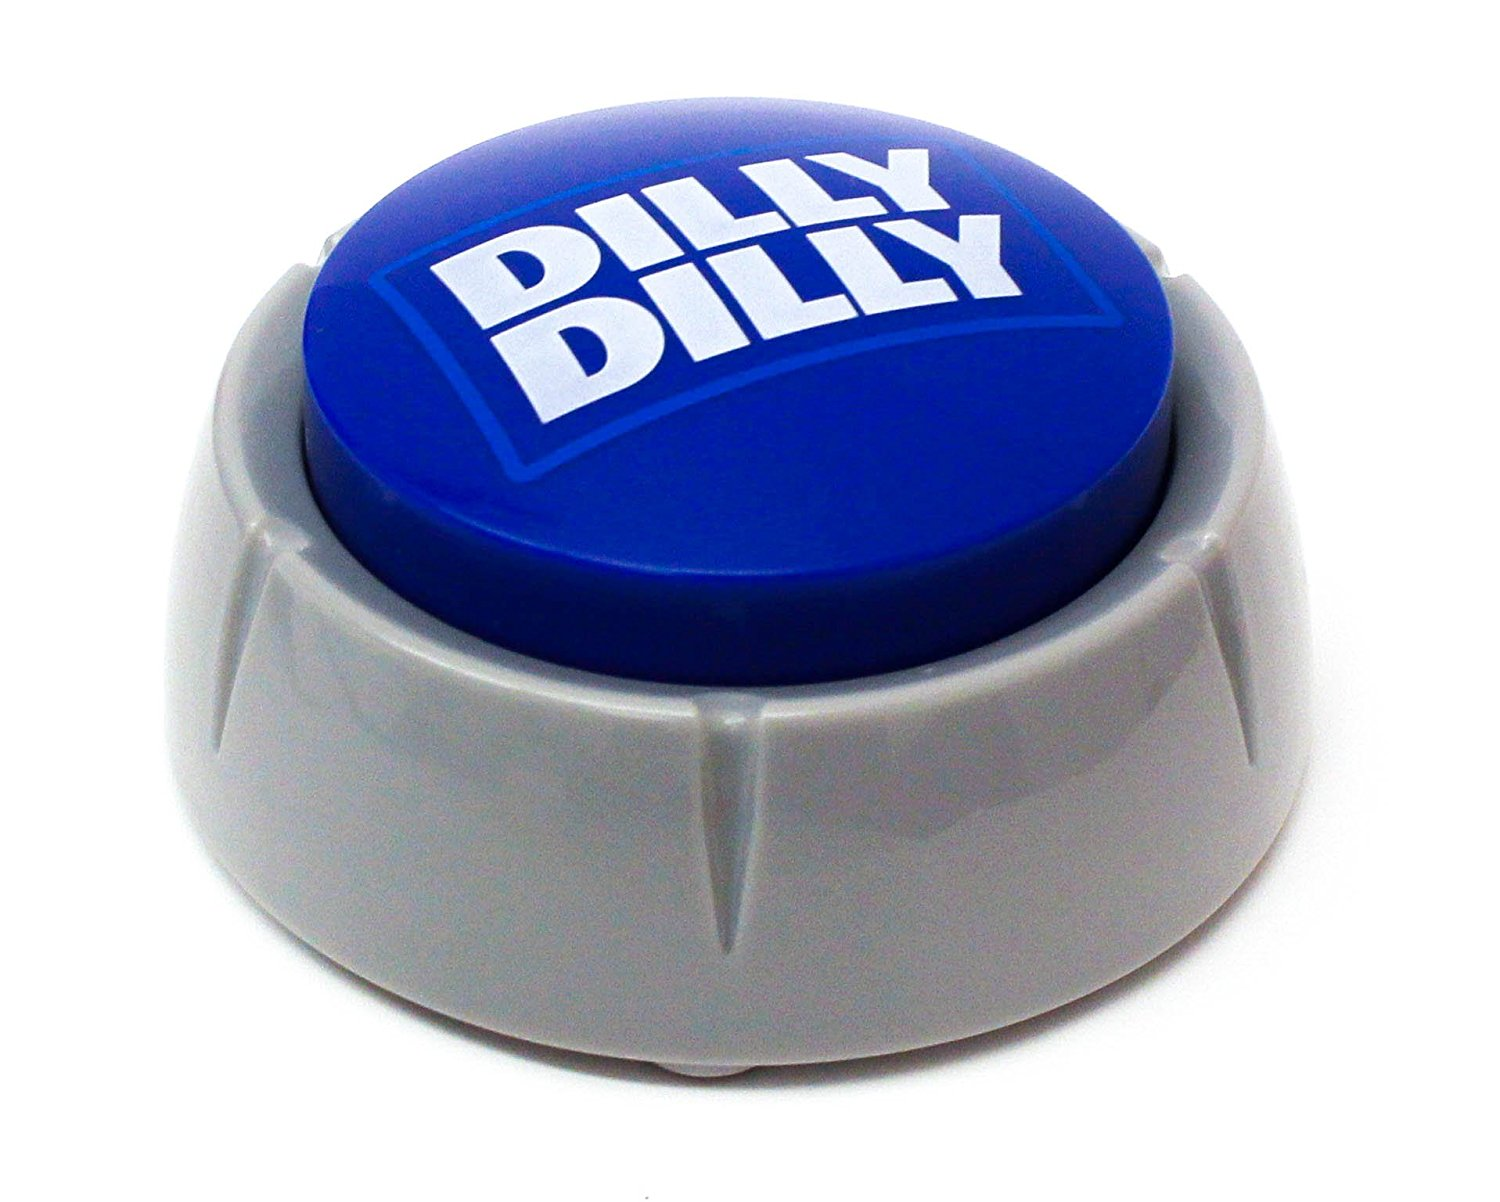 Official Dilly Dilly Button by Bud Light. Bud Light Commercial Dilly Dilly You are a True Friend of the Crown Pit of Misery Dilly Dilly. Authentic BudLight DillyDilly Button Batteries included